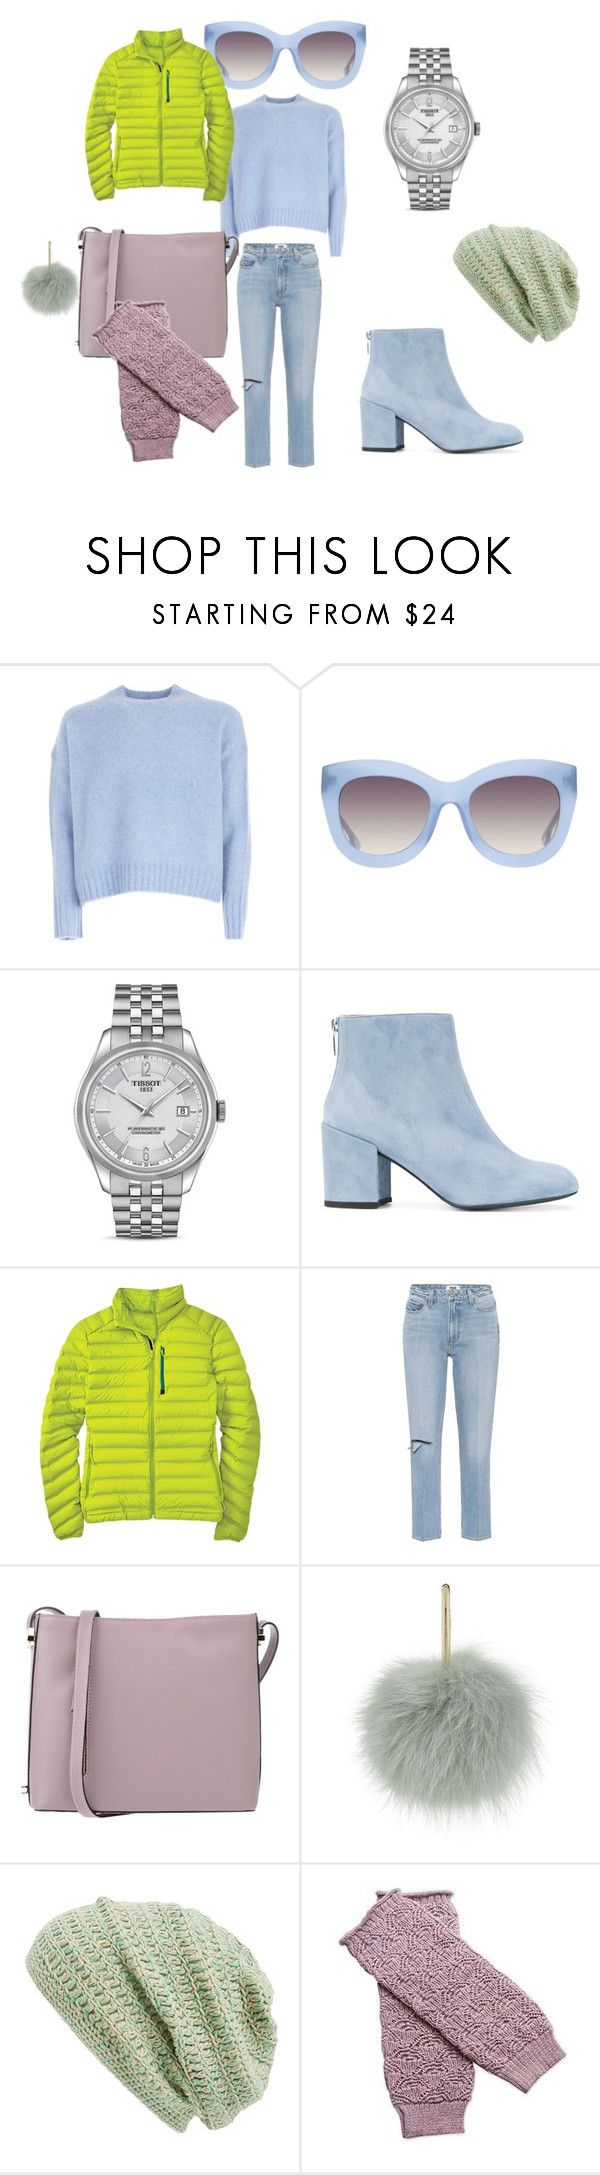 """""""samesaturation"""" by explorer-15067780217 on Polyvore featuring Helmut Lang, Alice + Olivia, Tissot, Stuart Weitzman, Mountain Hardwear, Paige Denim, Laura Di Maggio, Yves Salomon, King & Fifth Supply Co. and NOVICA"""